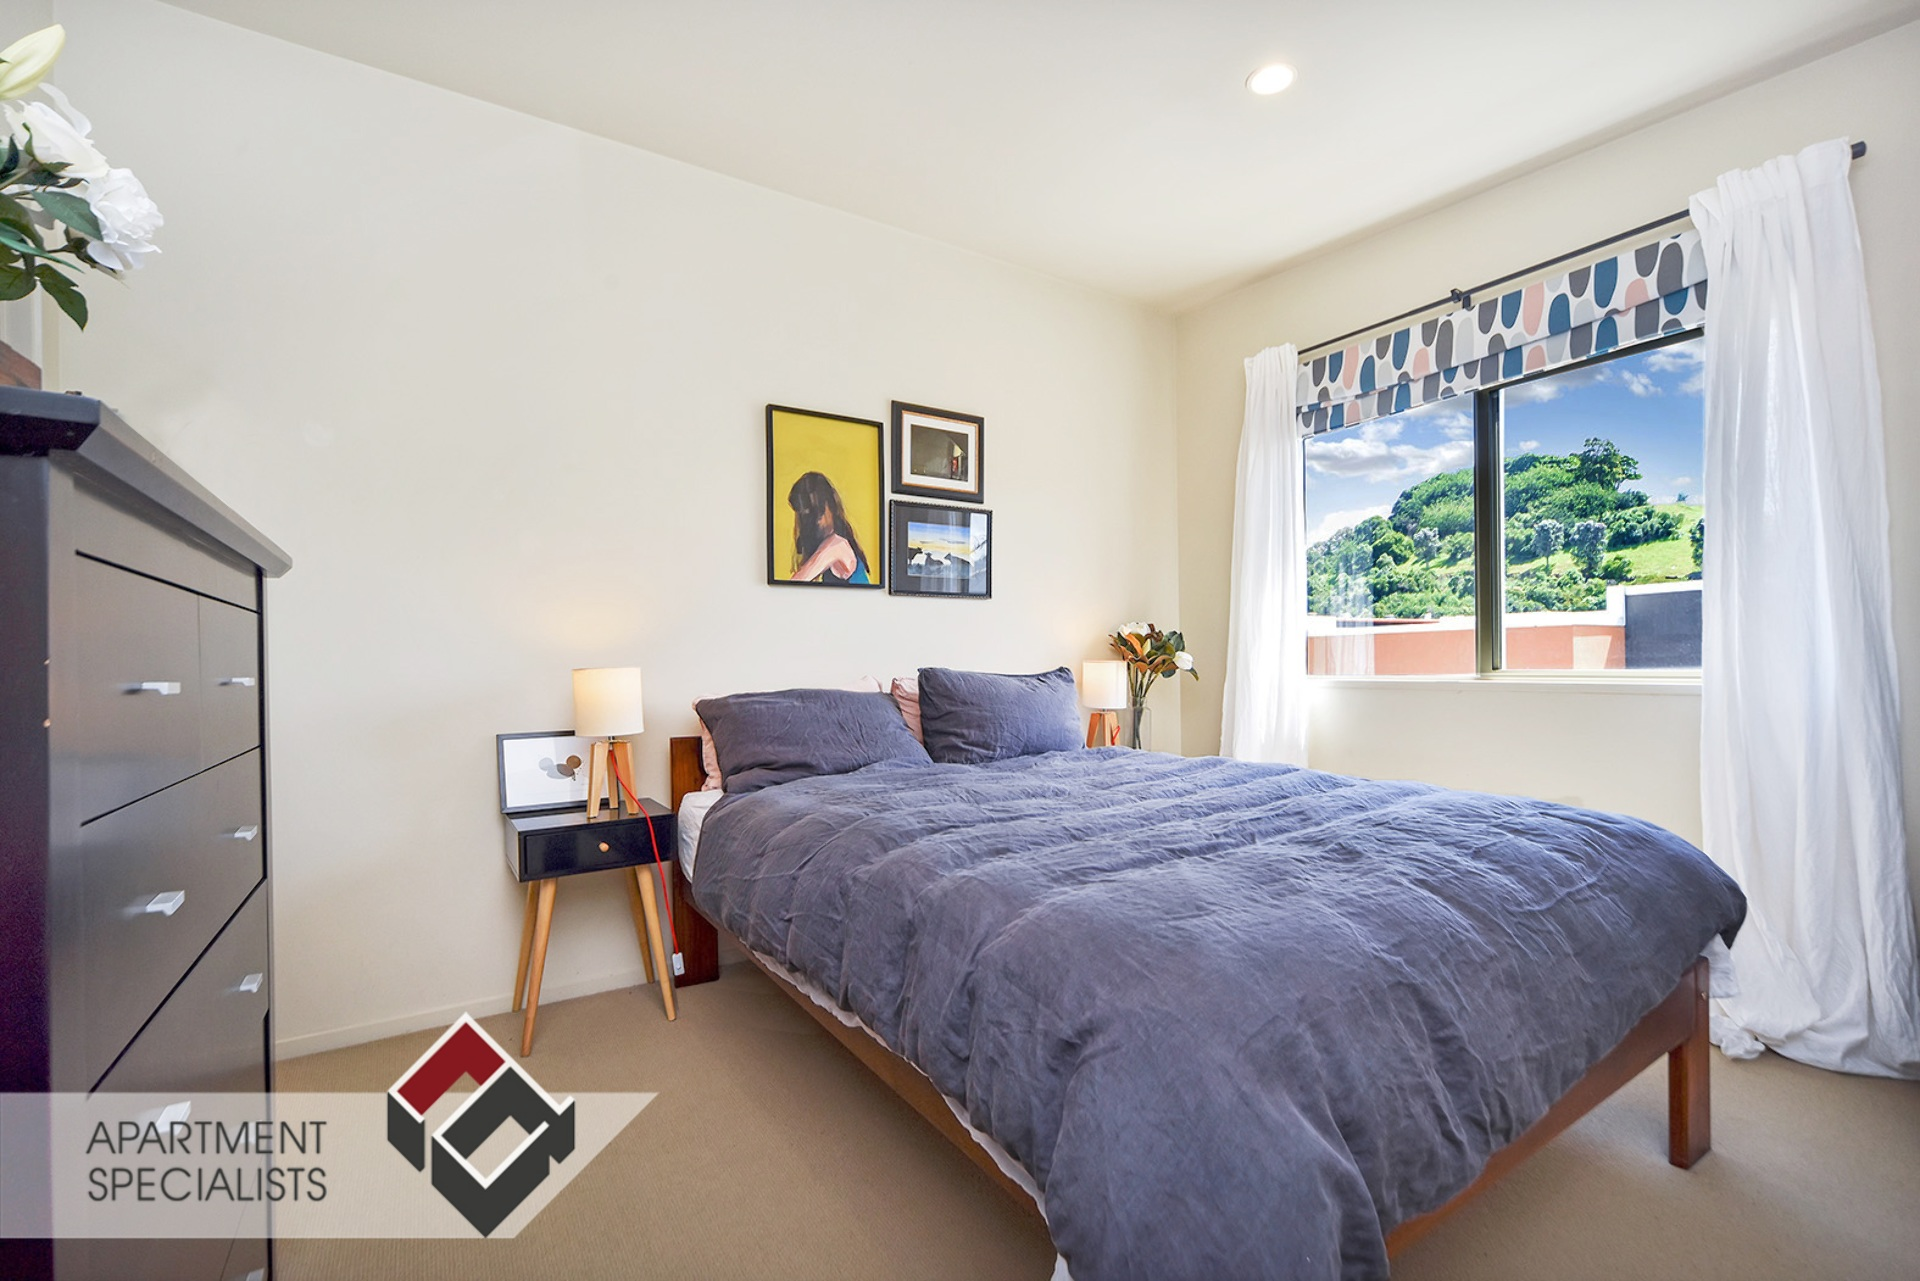 5 | 21 Hunters Park Drive, Three Kings | Apartment Specialists